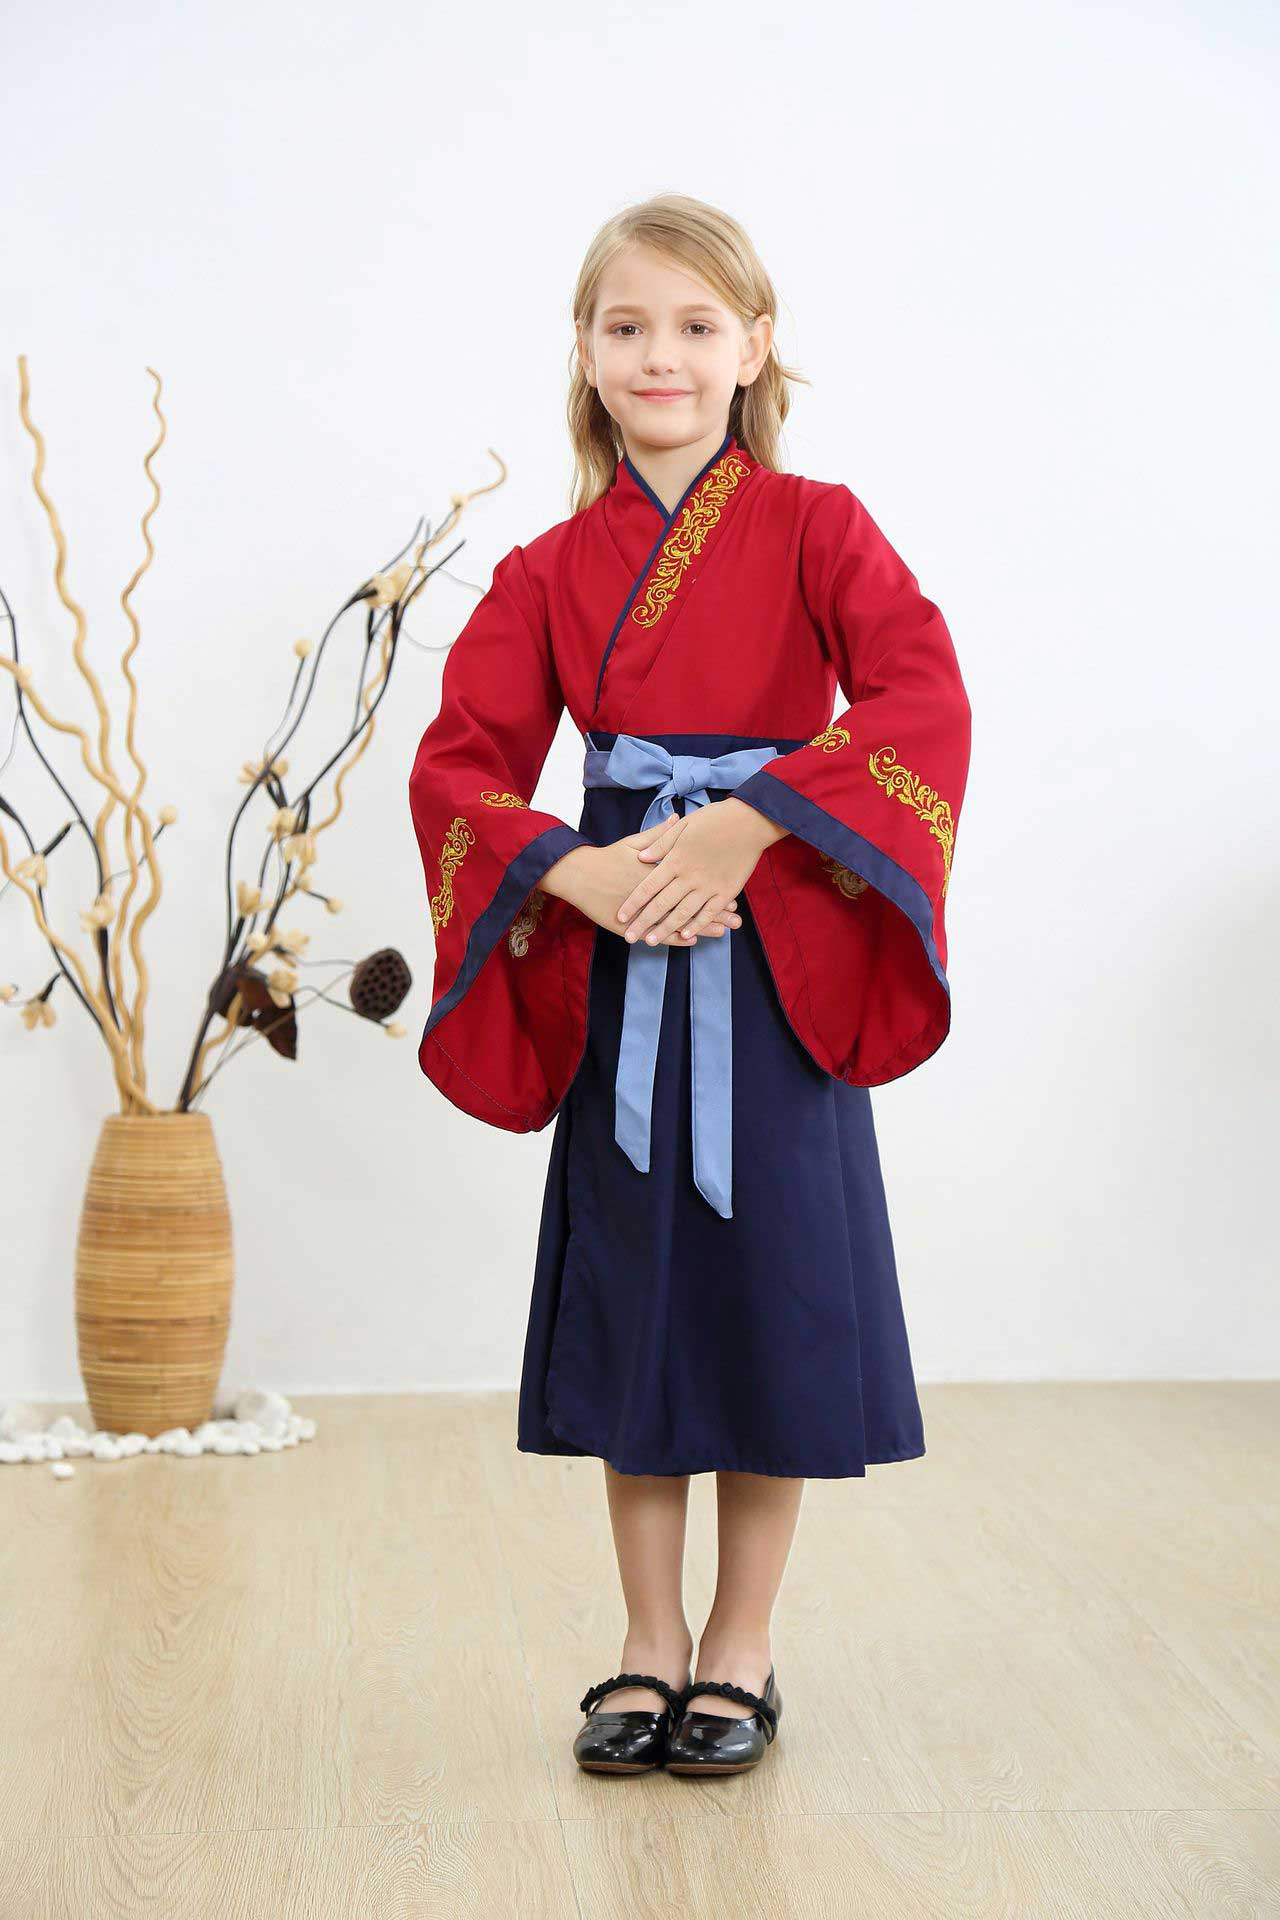 2020 Kids Hua Mulan Live Action Costume Cosplay Children S Clothing Princess Fancy Dress Kids